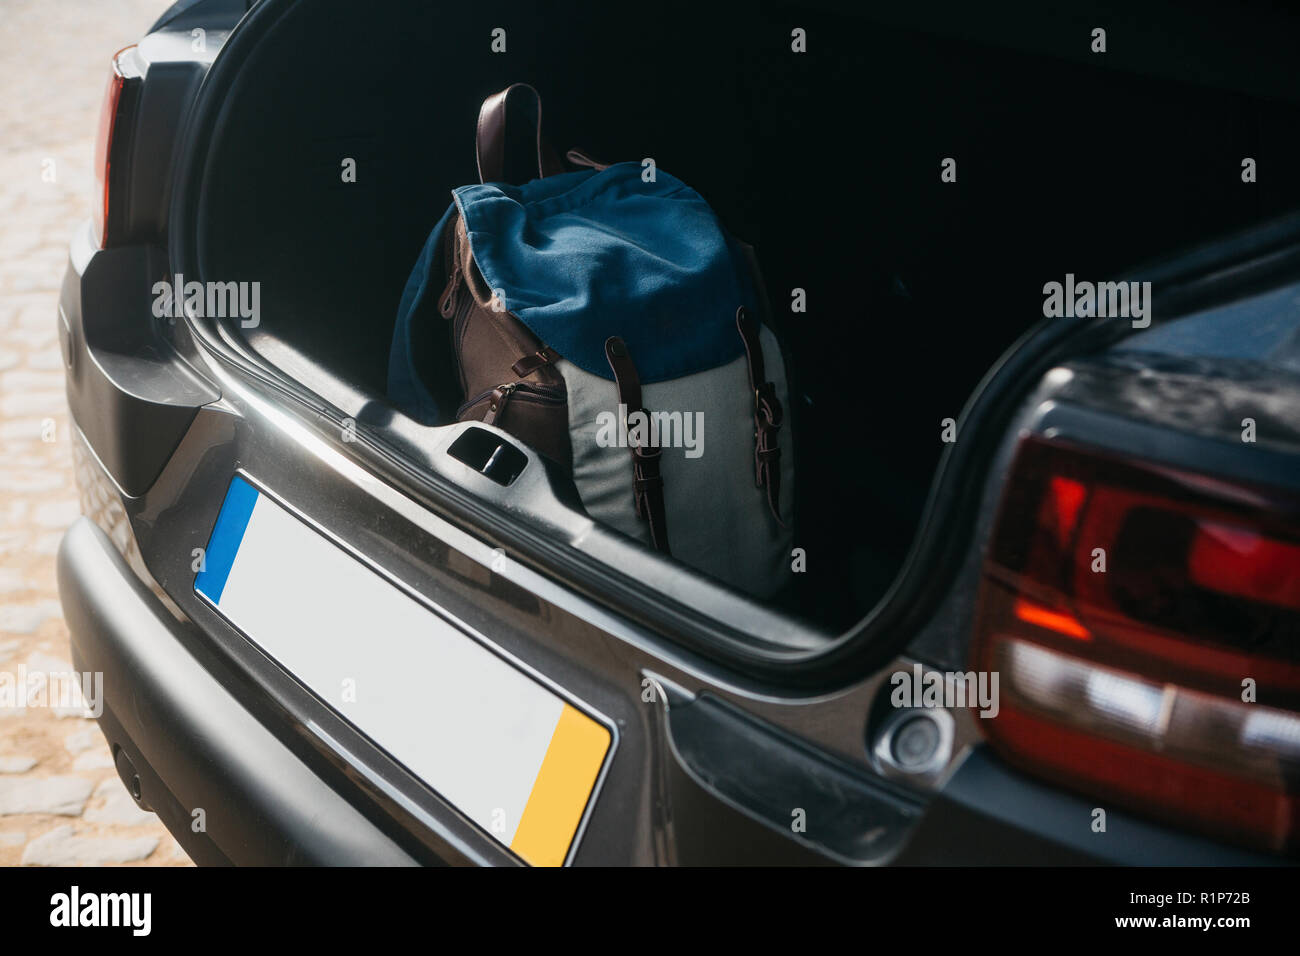 Backpack in the trunk of a car. Preparation for the trip. The concept of tourism or travel by car. - Stock Image